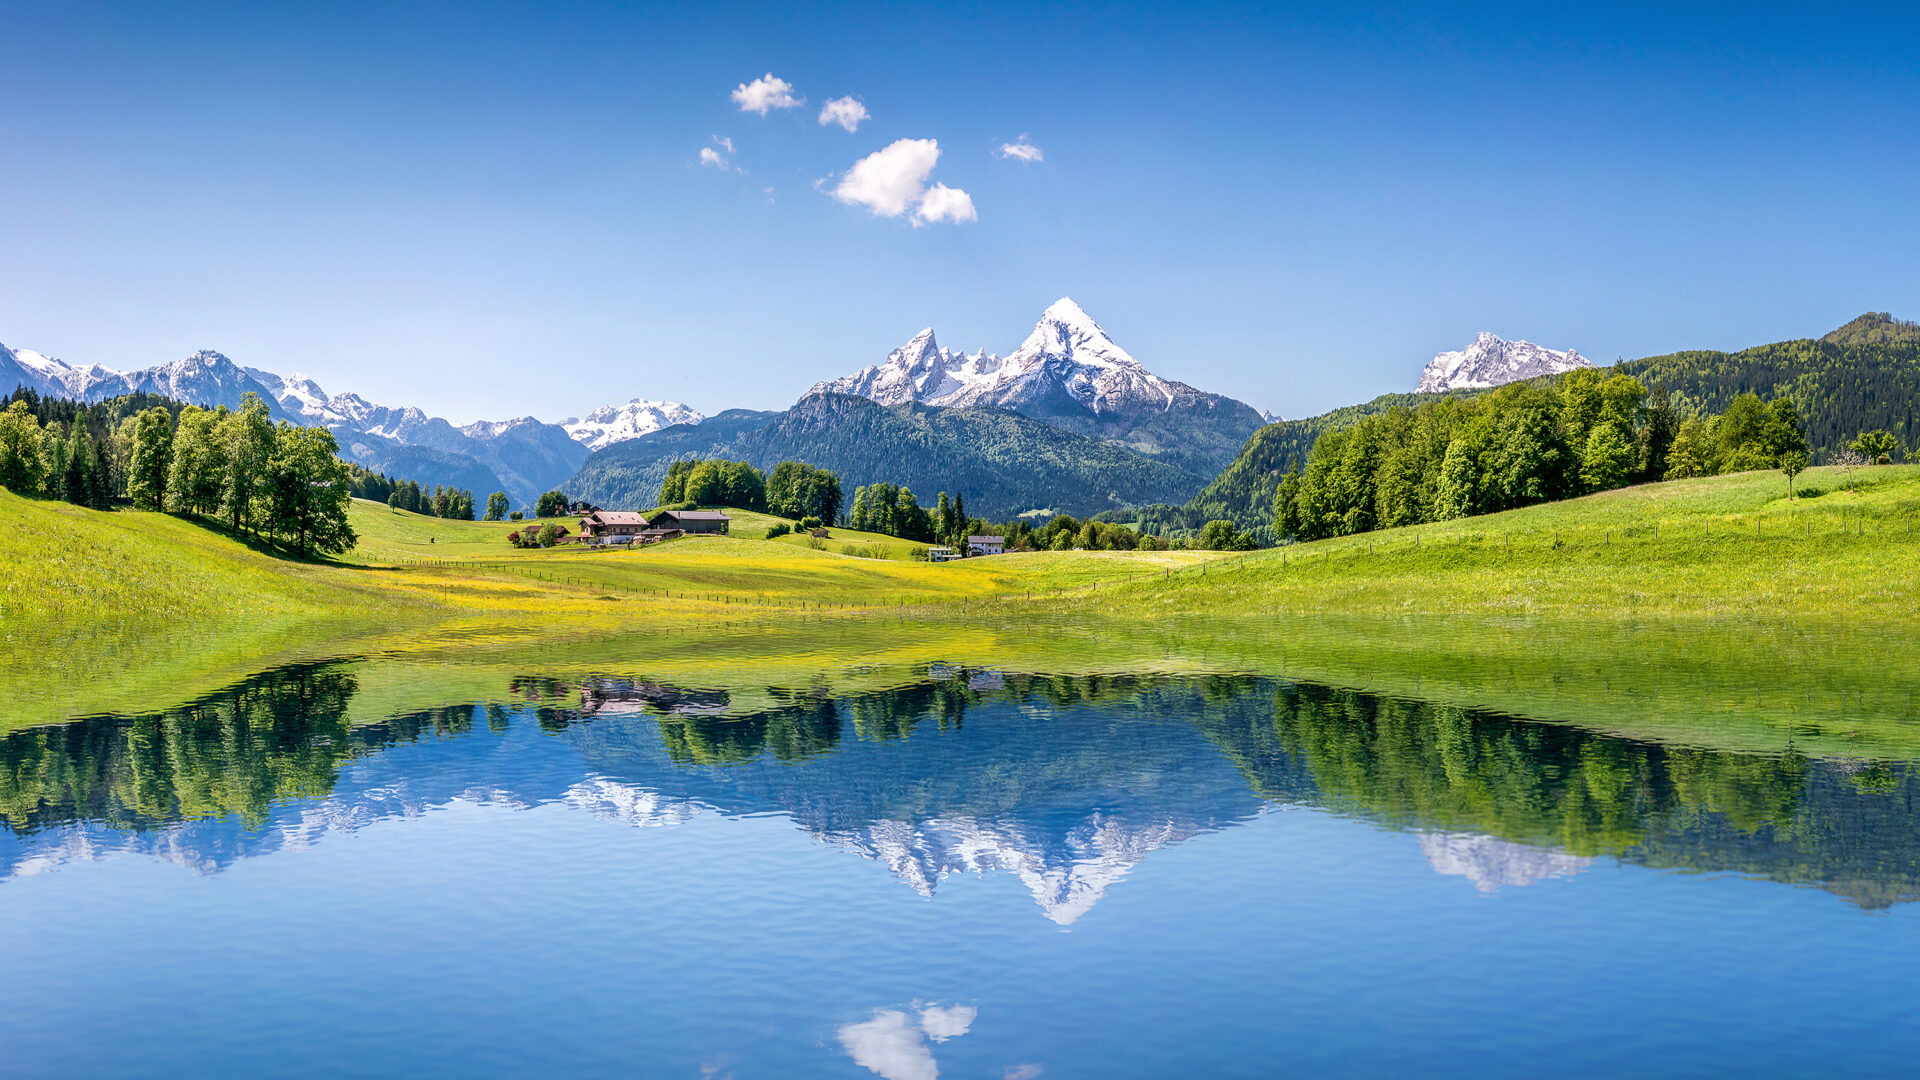 View of the Swiss Alps with a lake in front